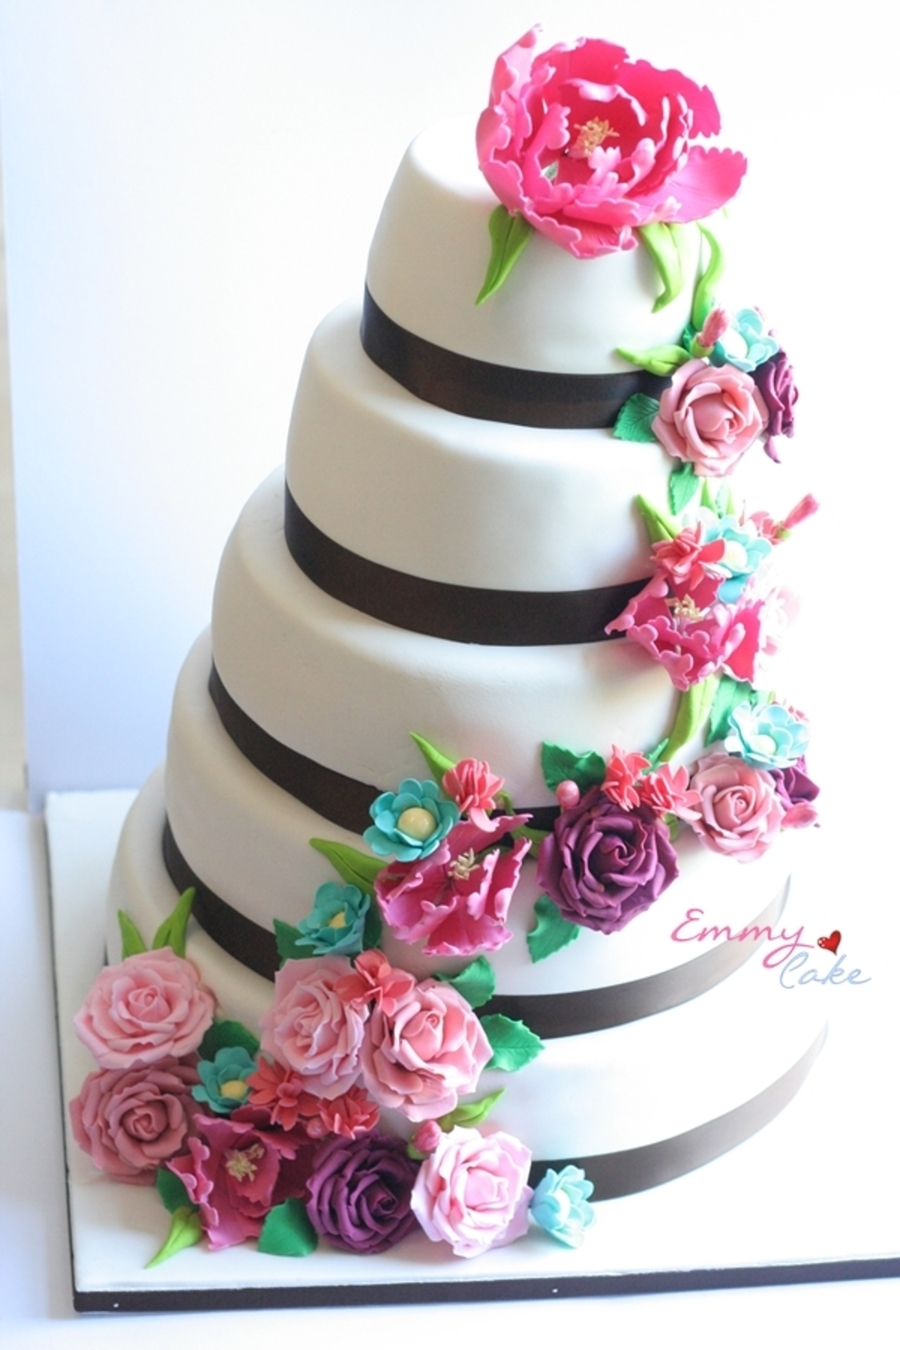 Card Themed Wedding Cake  on Cake Central